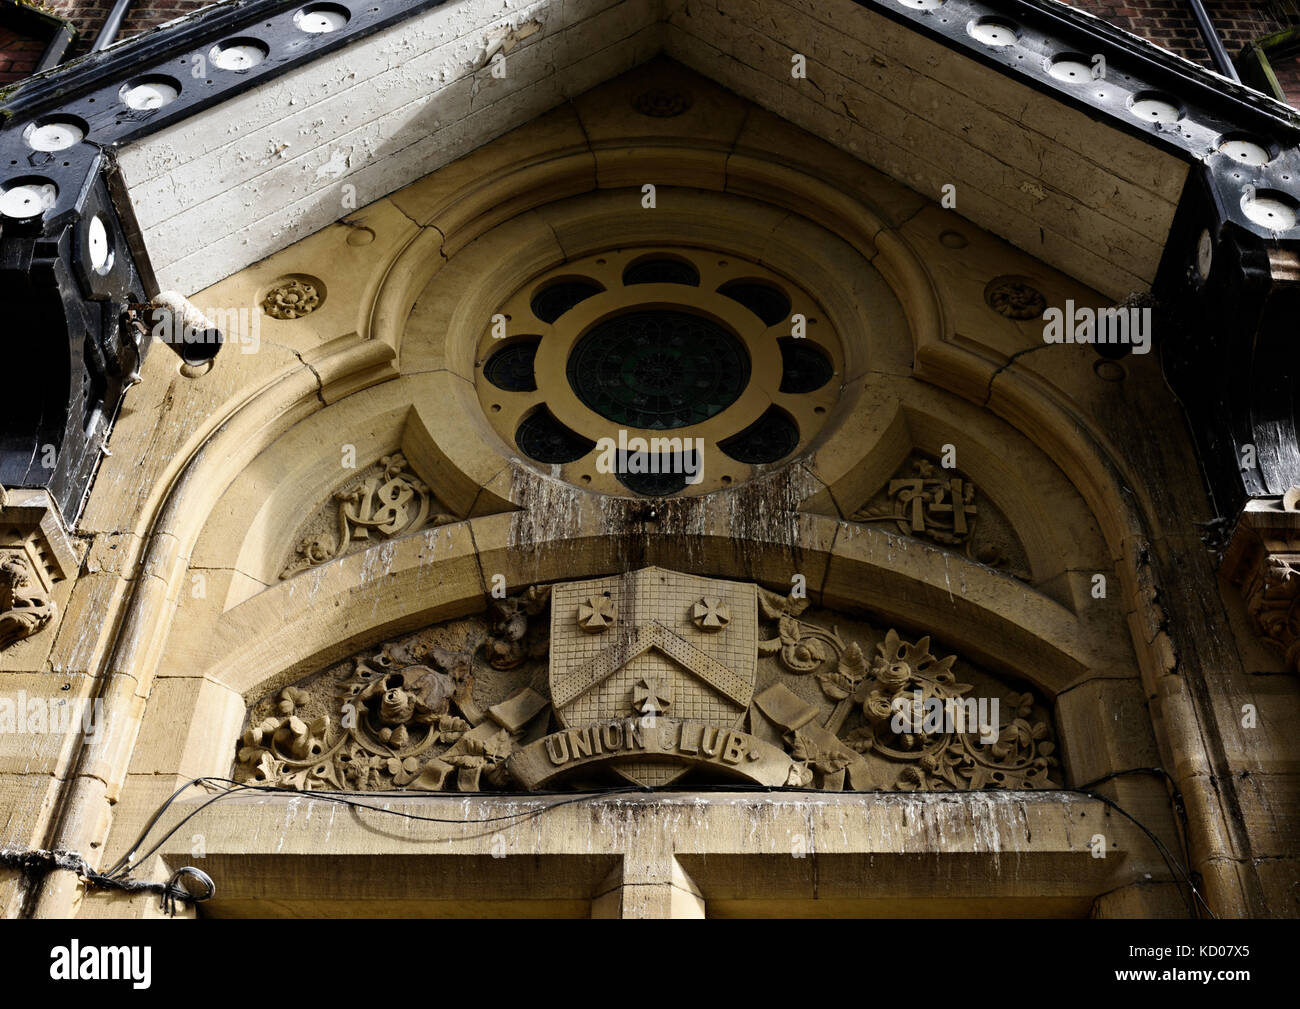 Pigeon droppings on ornate carved stonework in bury lancashire - Stock Image